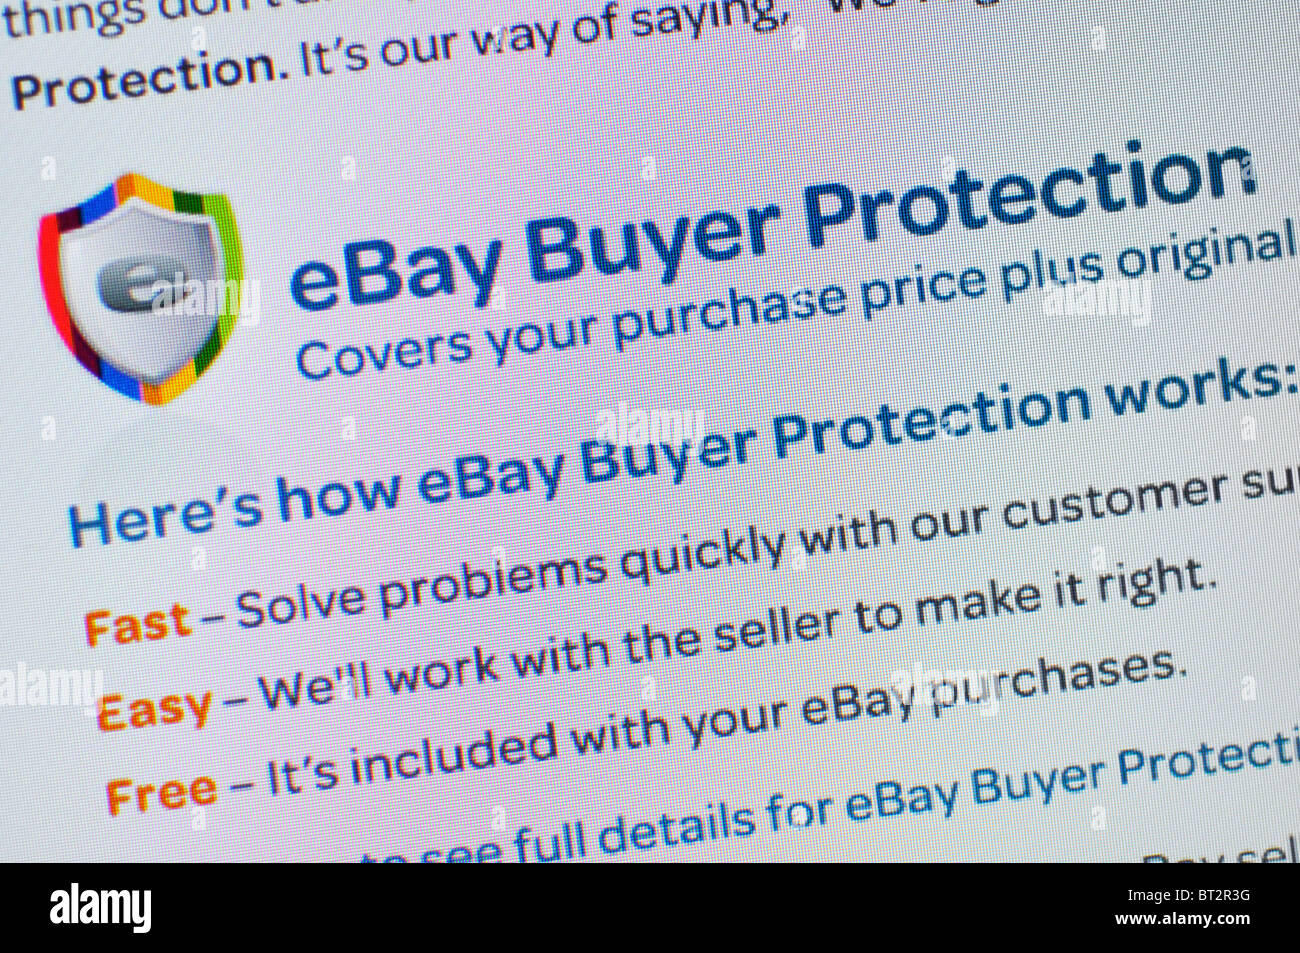 Ebay Buyer Protection Website Stock Photo Alamy